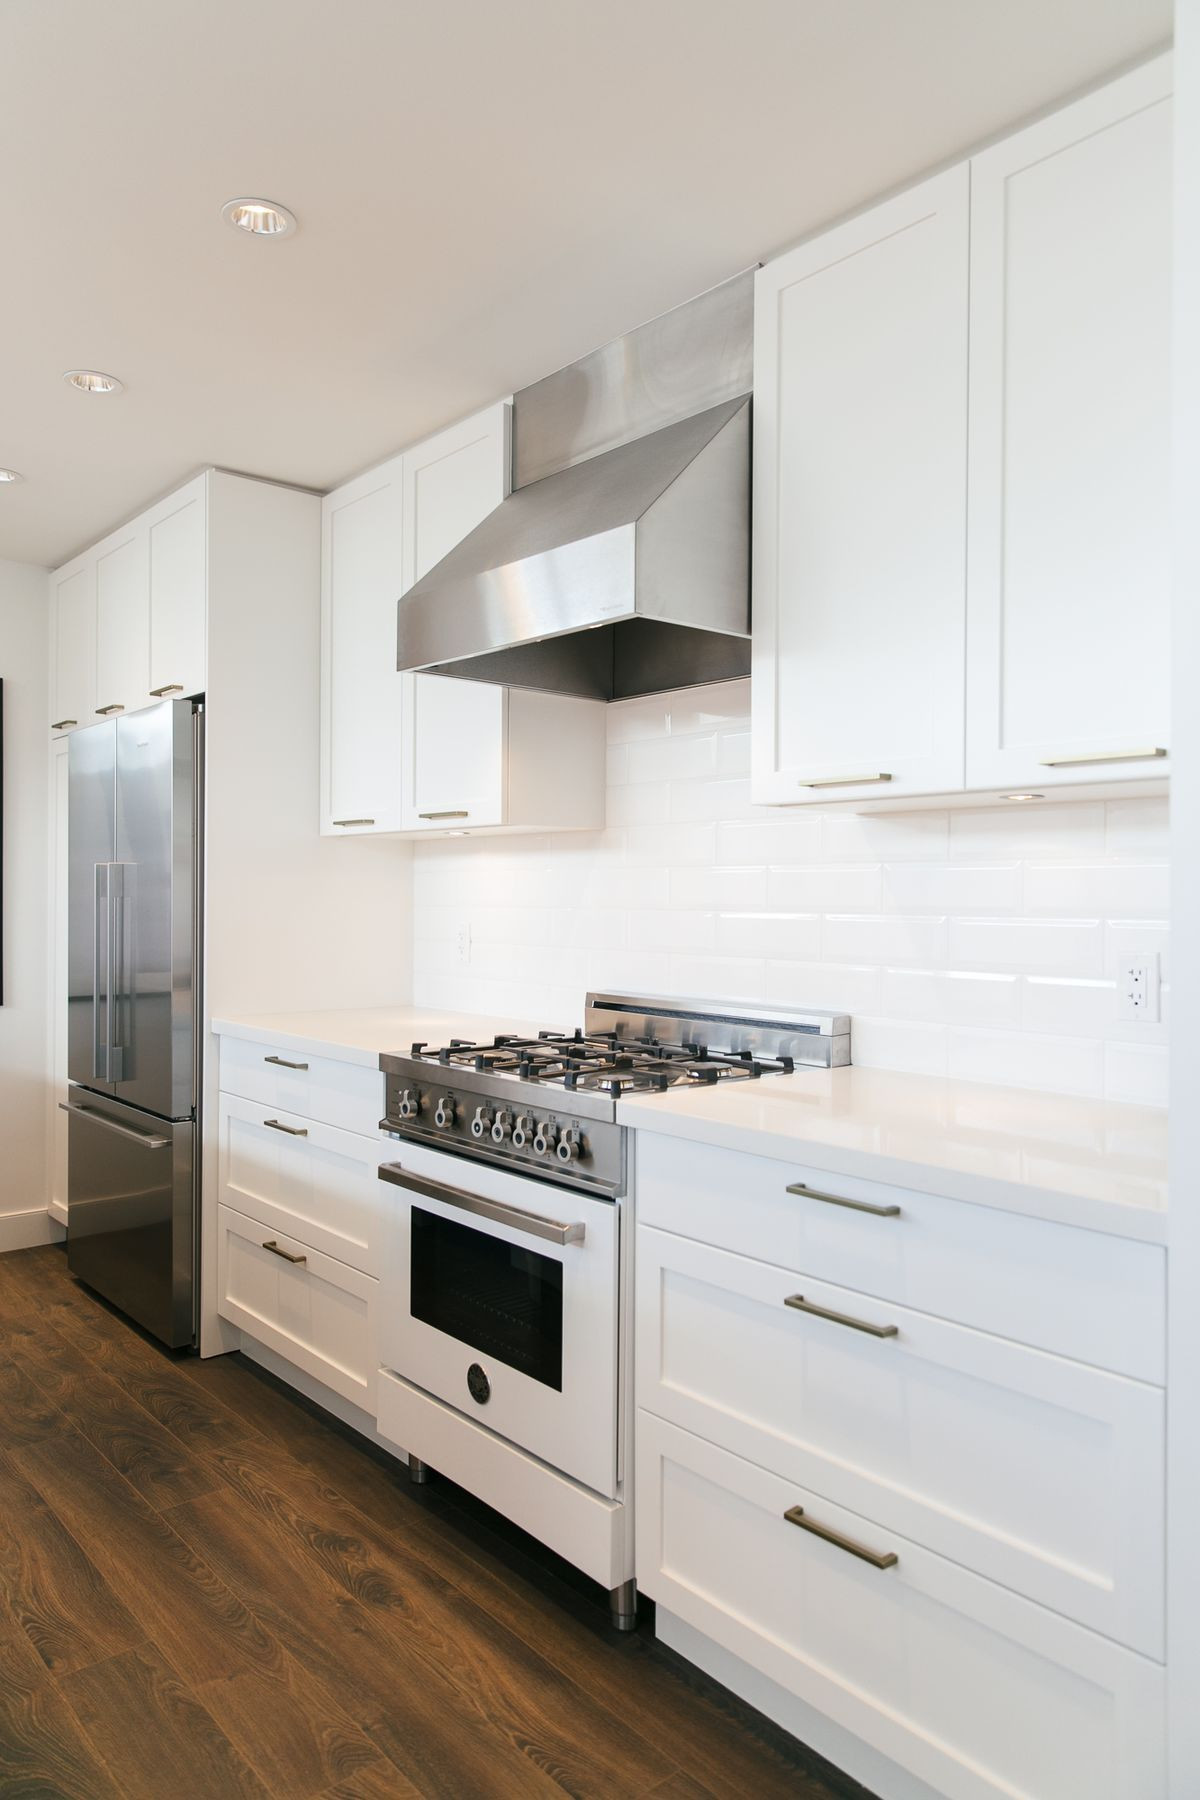 hardwood flooring auction calgary of bertazzoni range for modern kitchen design ideas with stainless throughout range hood white kitchen design ideas with white bertazzoni range and stainless steel range hood plus wooden flooring also recessed ceiling lighting